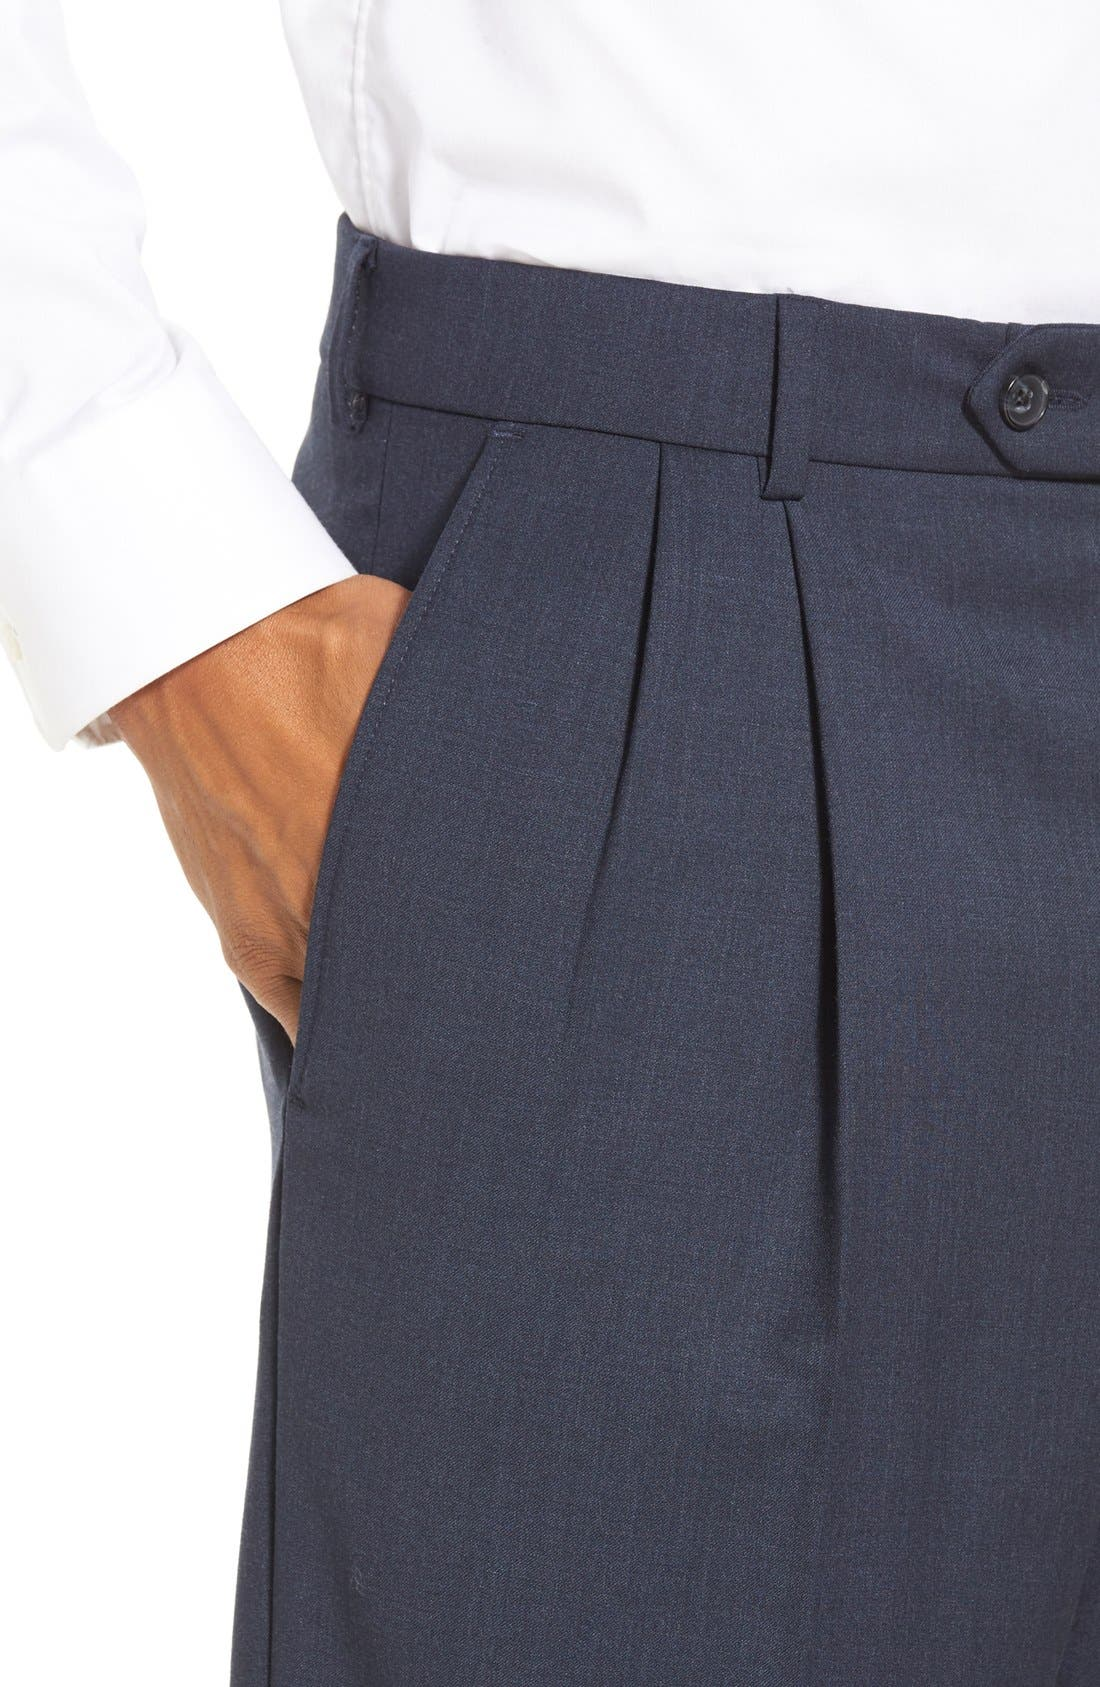 Pleated Solid Wool Trousers,                             Alternate thumbnail 52, color,